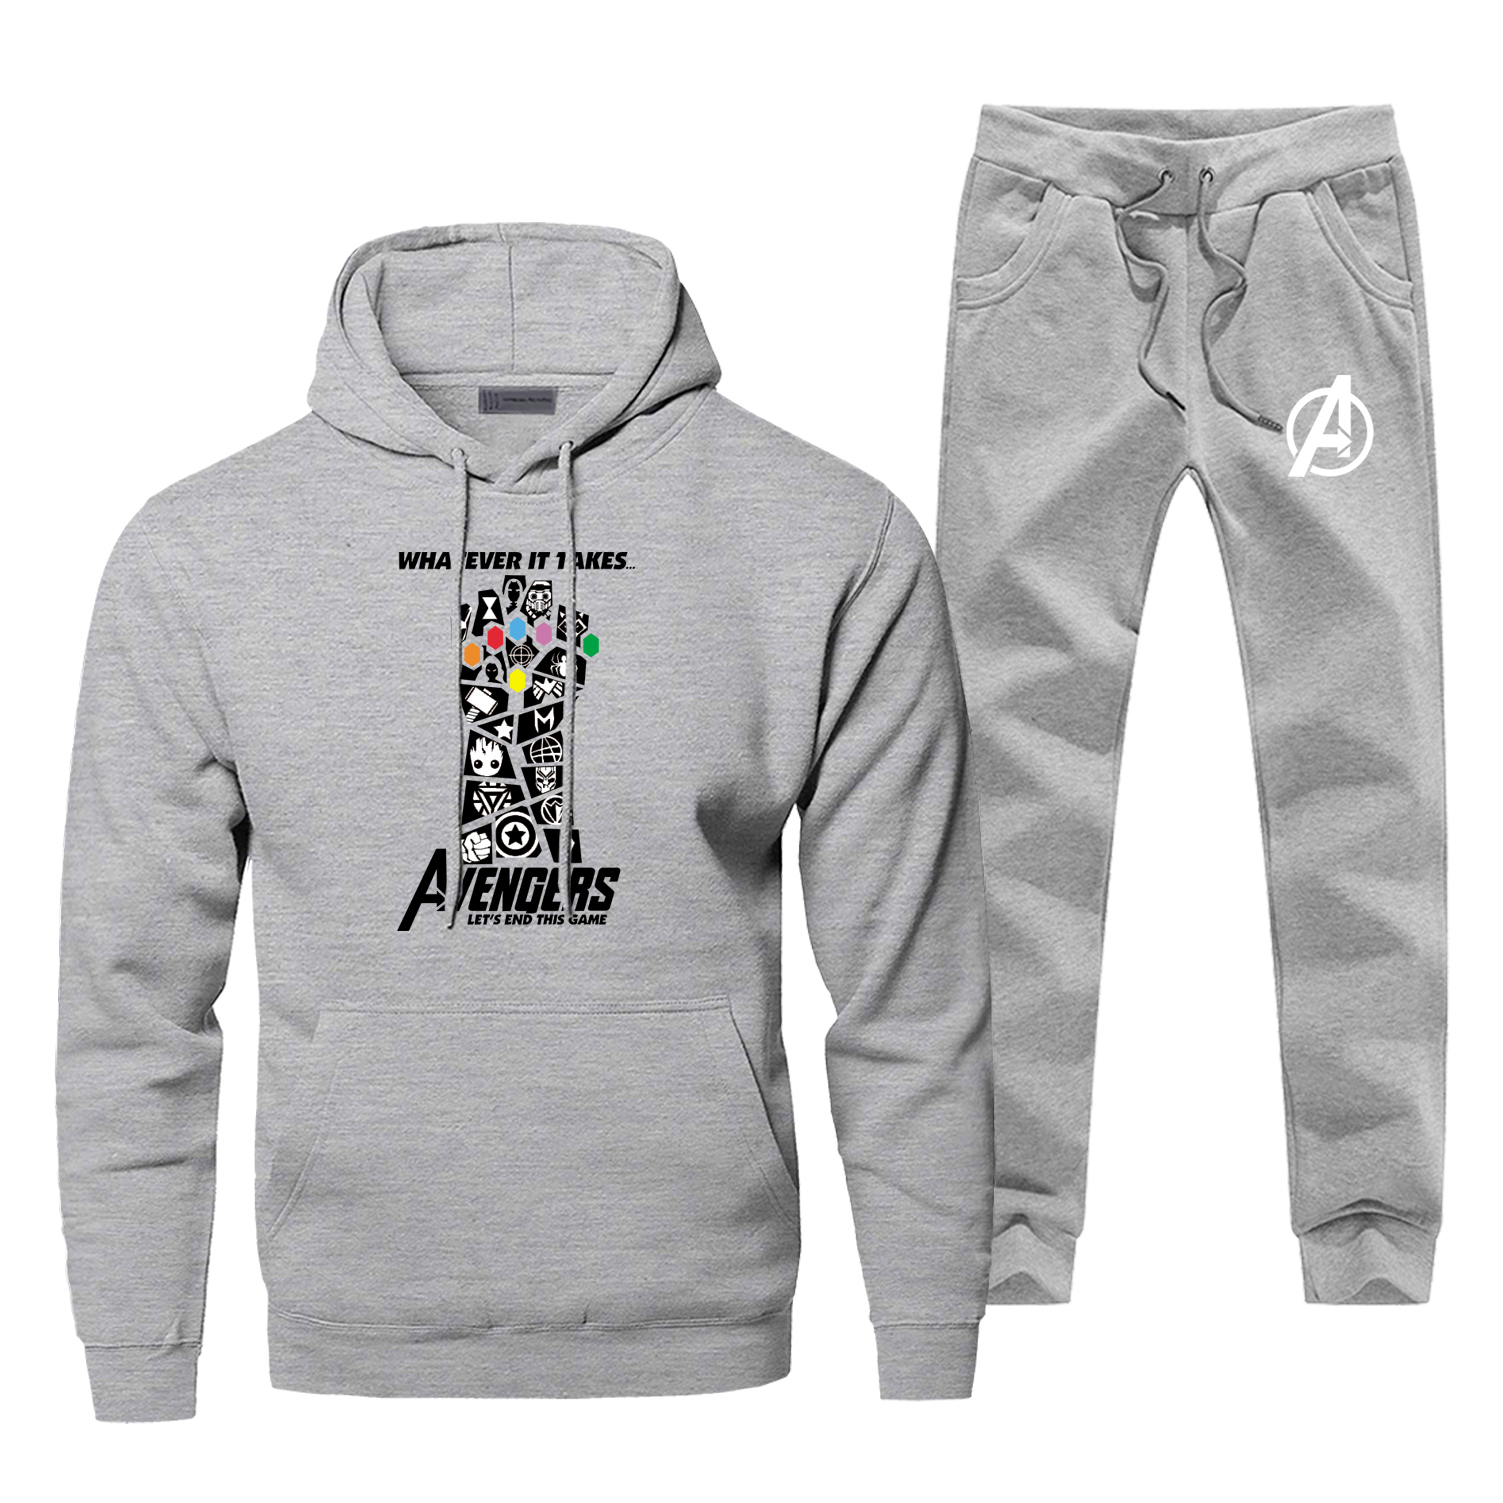 Marvel Avengers Endgame Let's End This Game Men's Sets Iron Man Infinity Gauntlet Fashion Hoodies Pants Fleece Warm Sweatpants